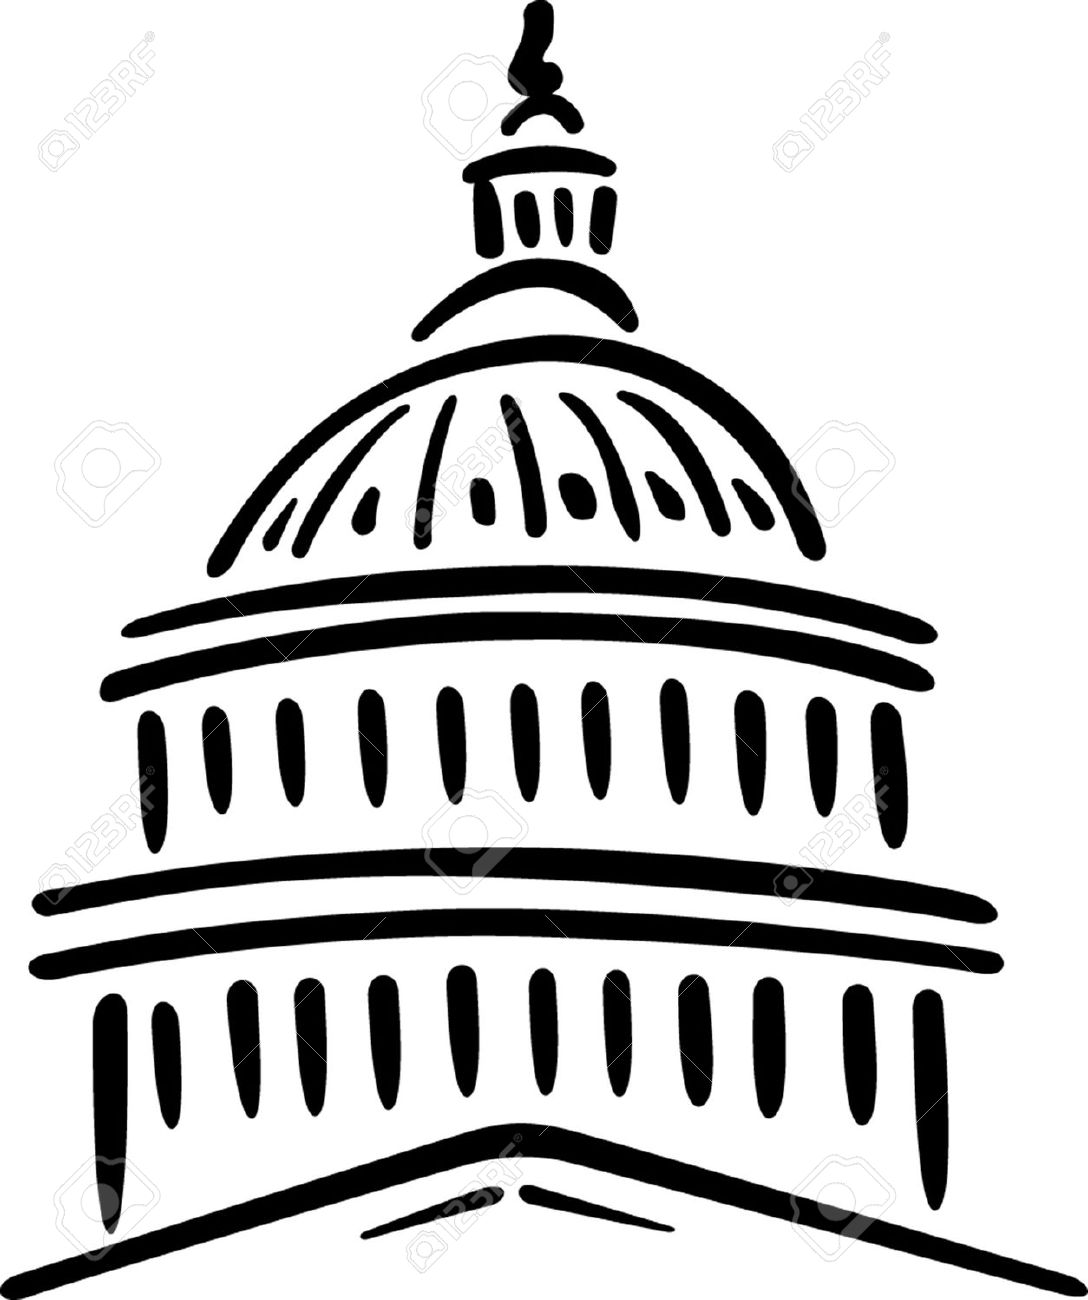 22152720-Illustration-of-the-U-S-Capitol-Washington-D-C--Stock-Vector-building.jpg